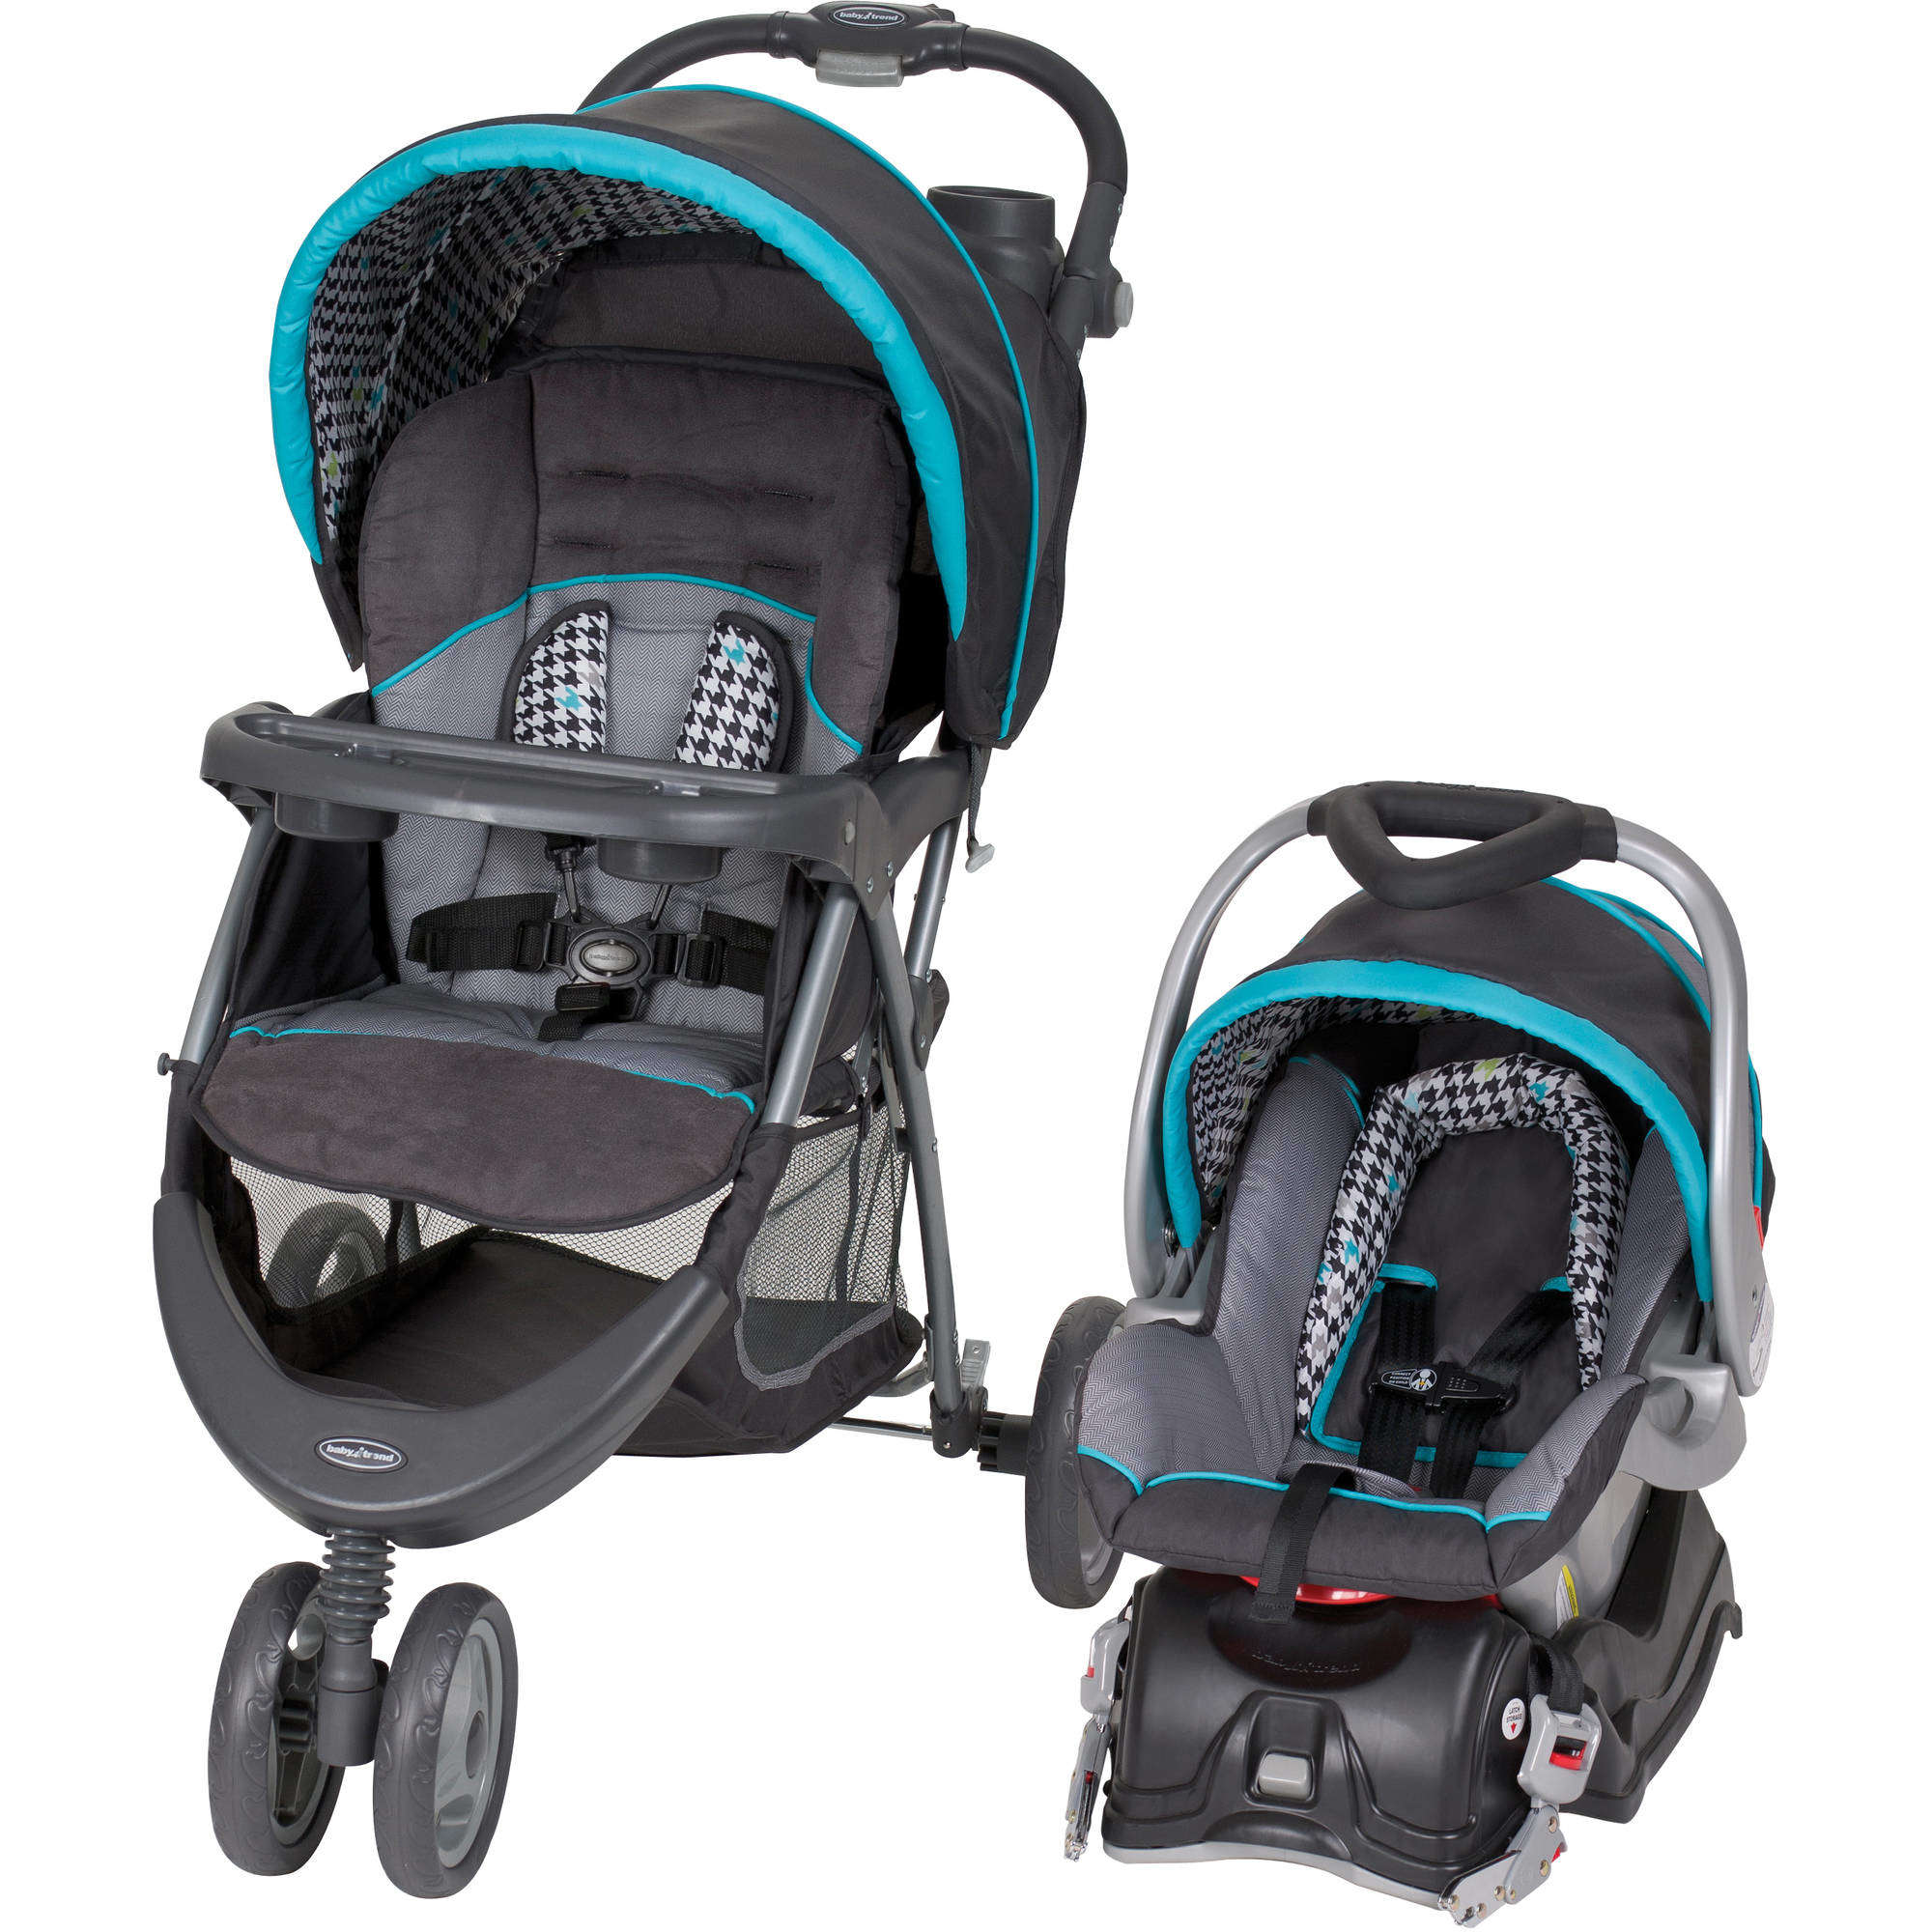 Baby Trend EZ Ride 5 Travel System, Houndstooth updated by Baby Trend